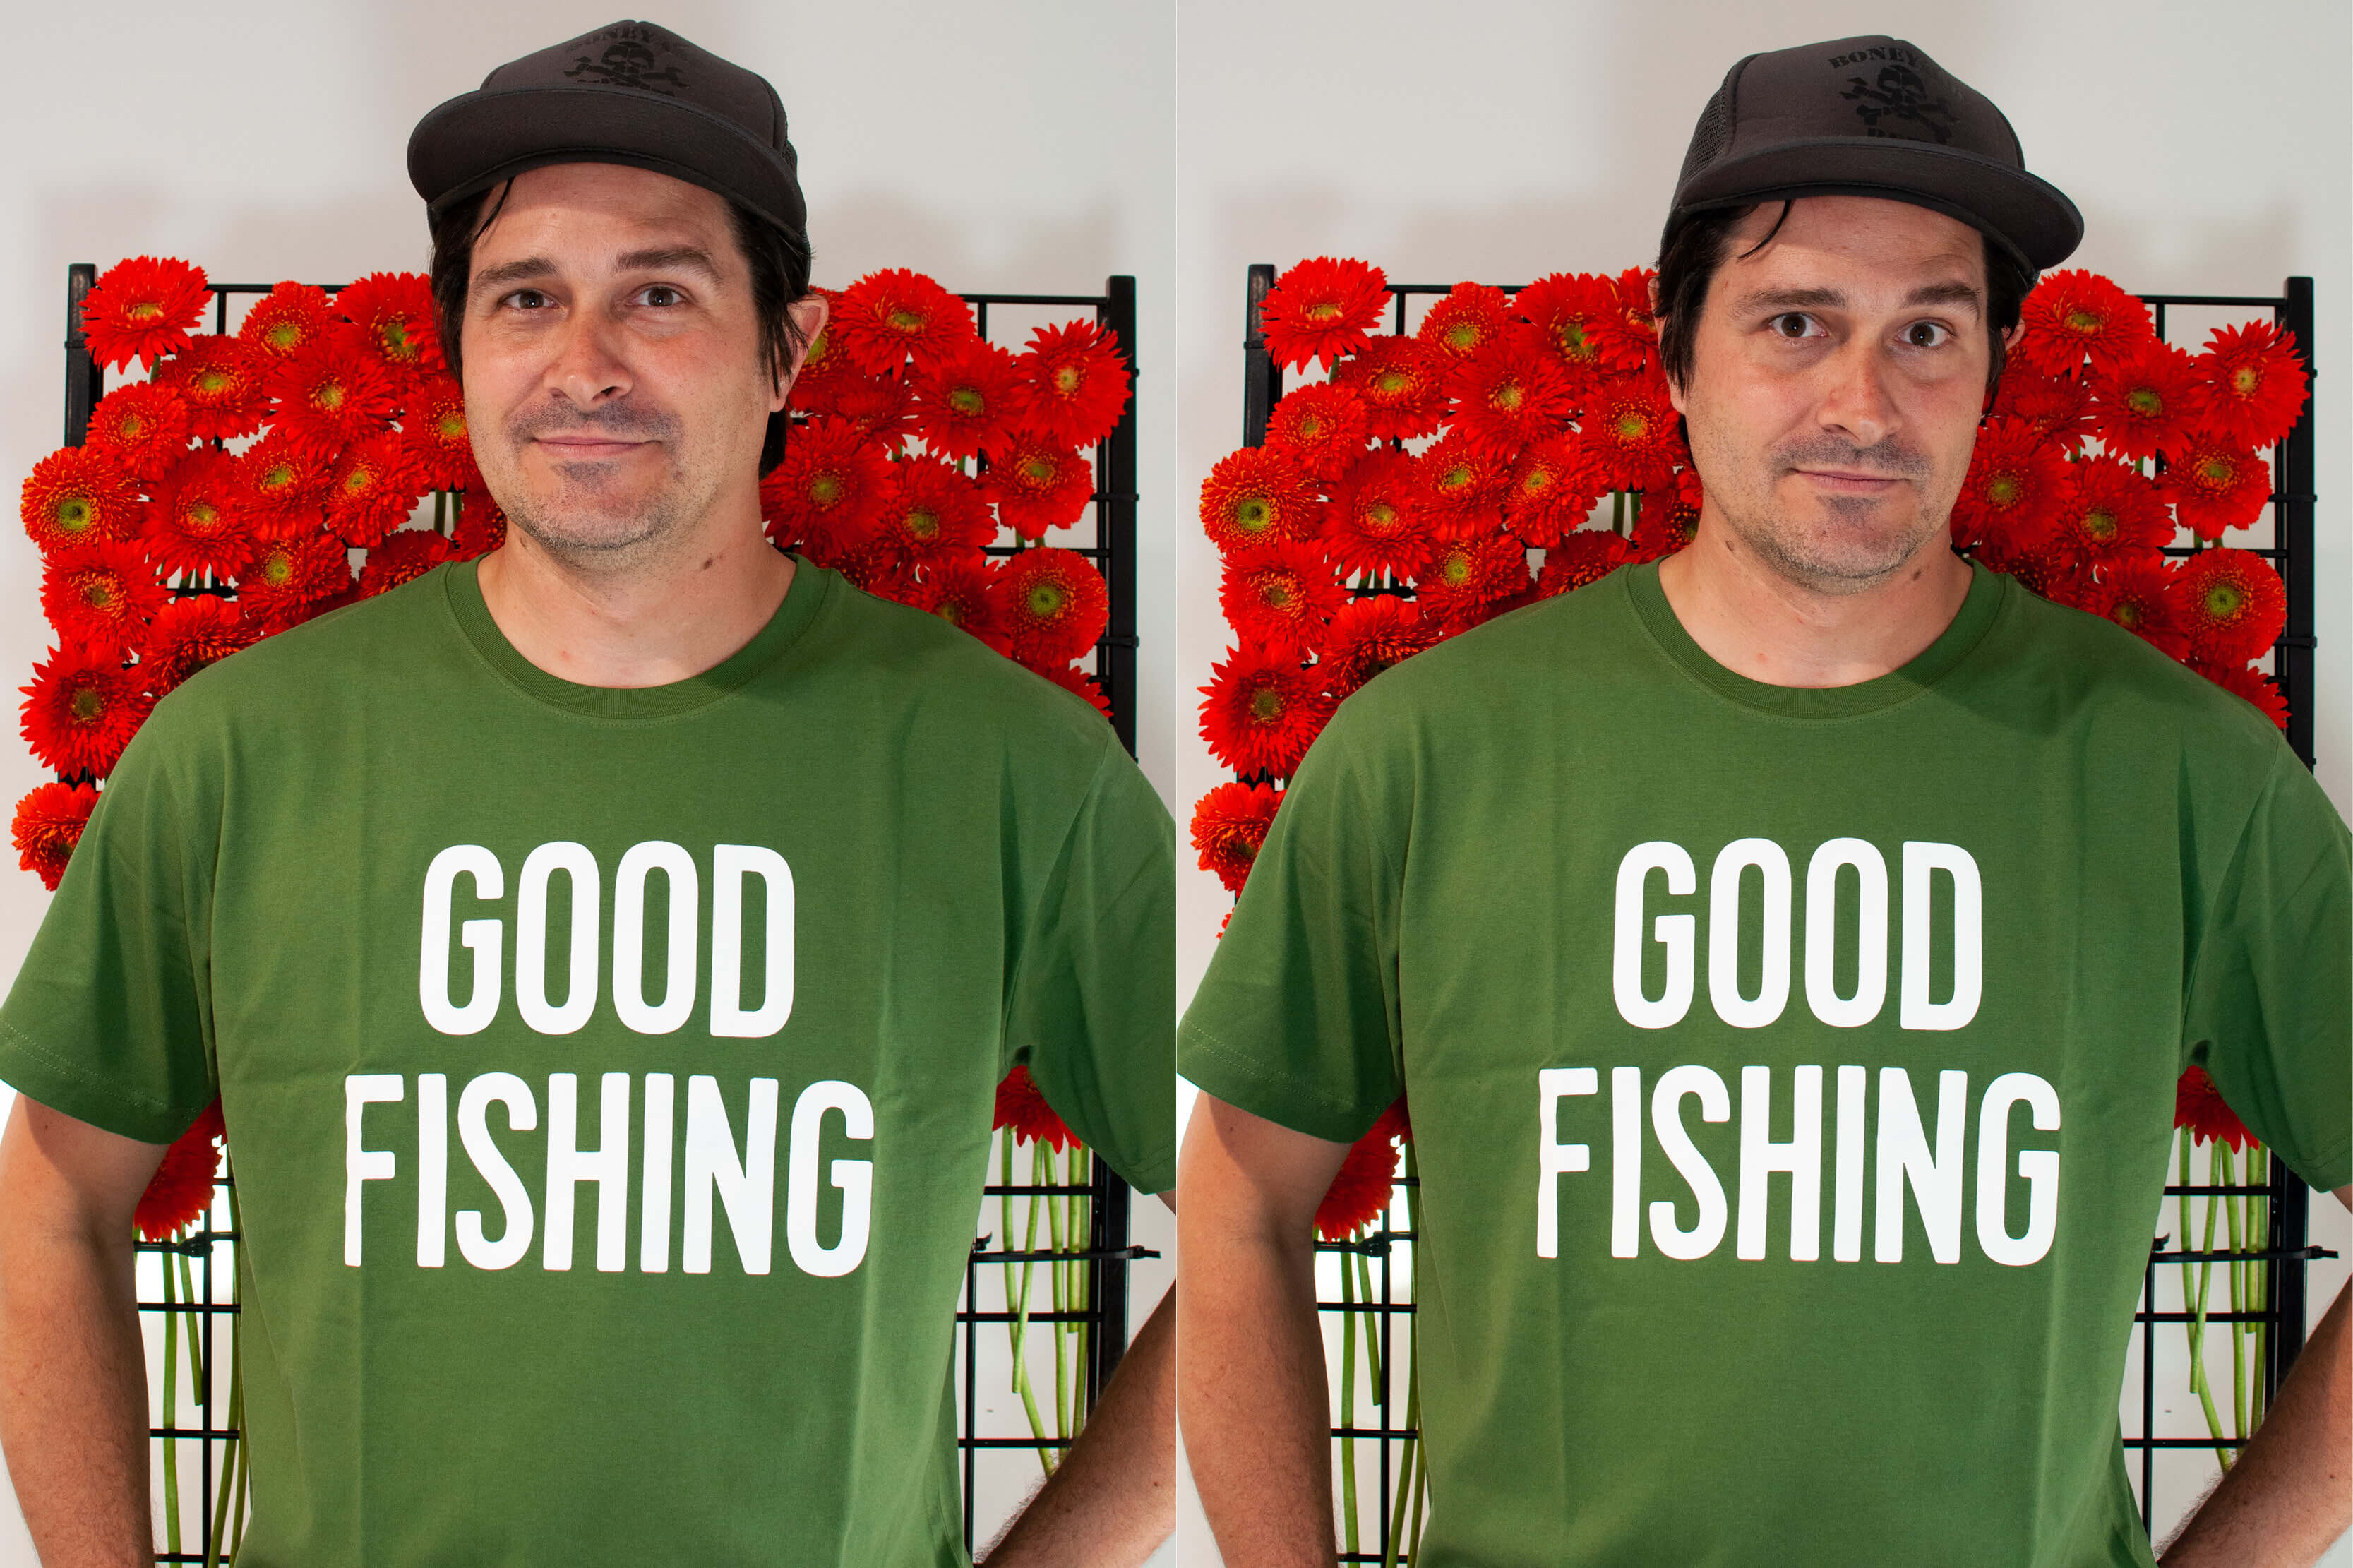 GOOD FISHING - 2018 Yearbook